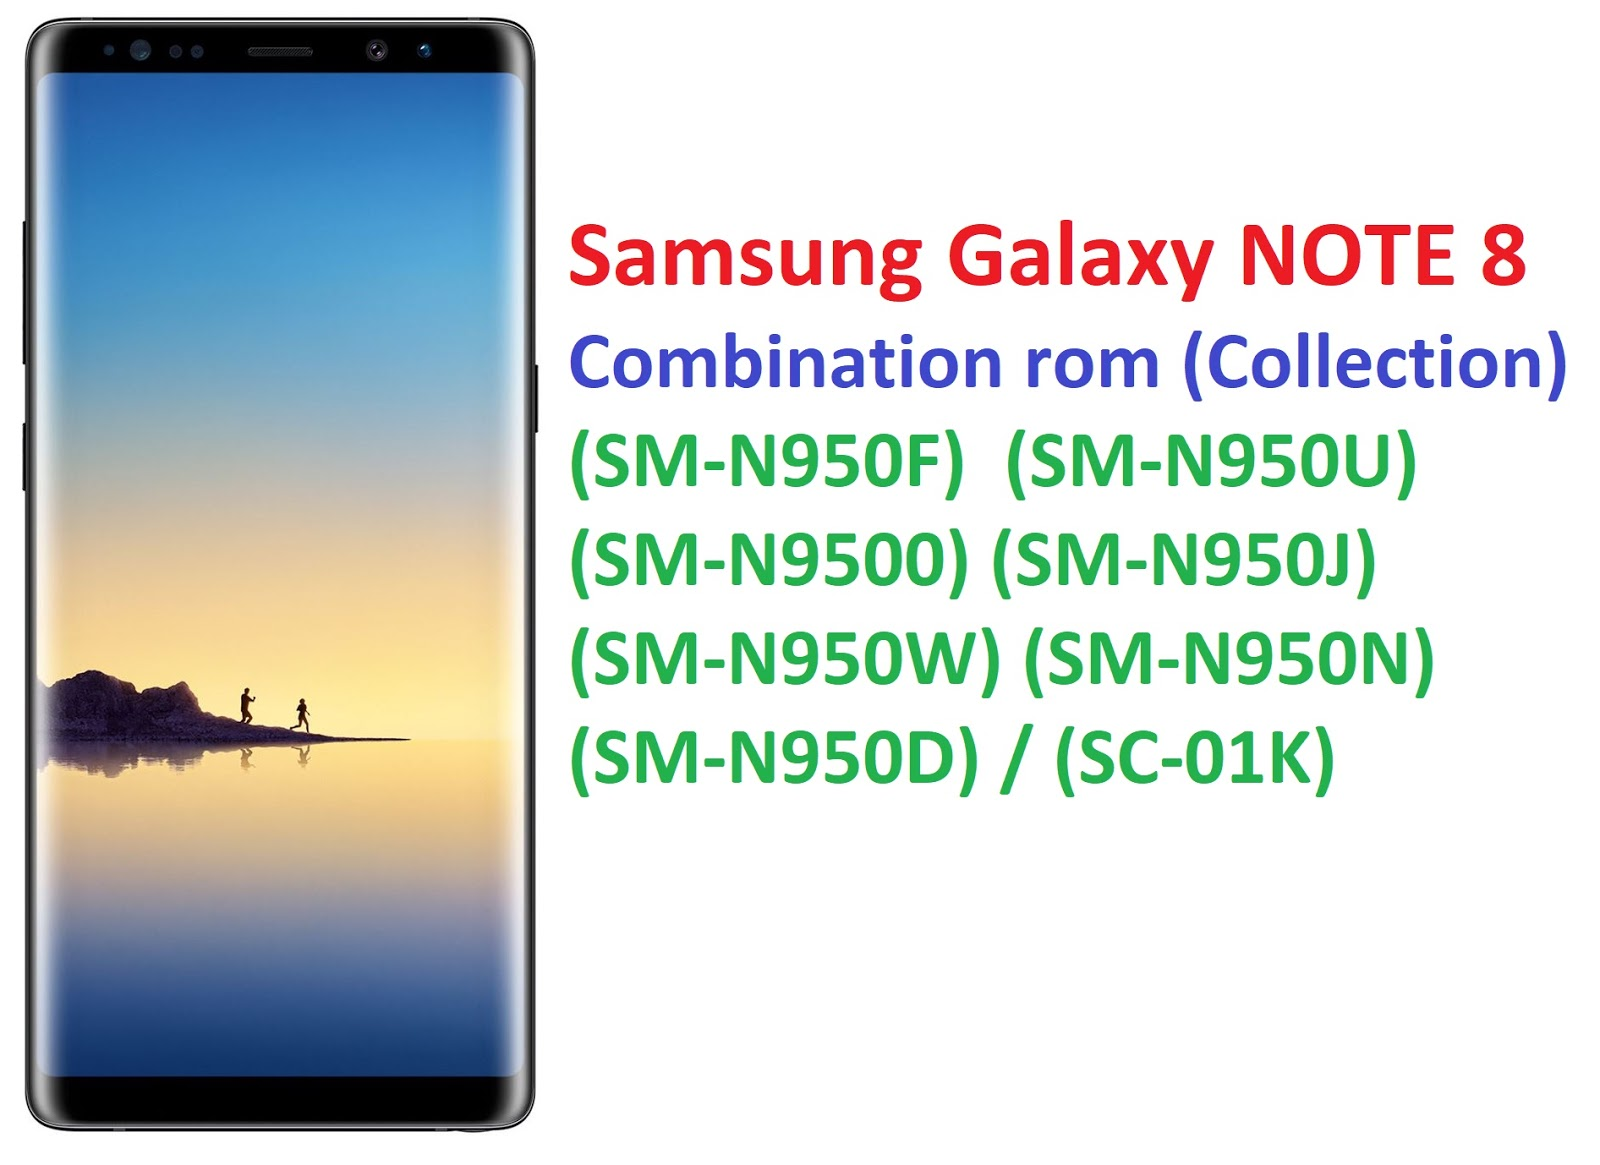 Samsung Galaxy NOTE 8 Combination rom (Collection) (SM-N950F) (SM